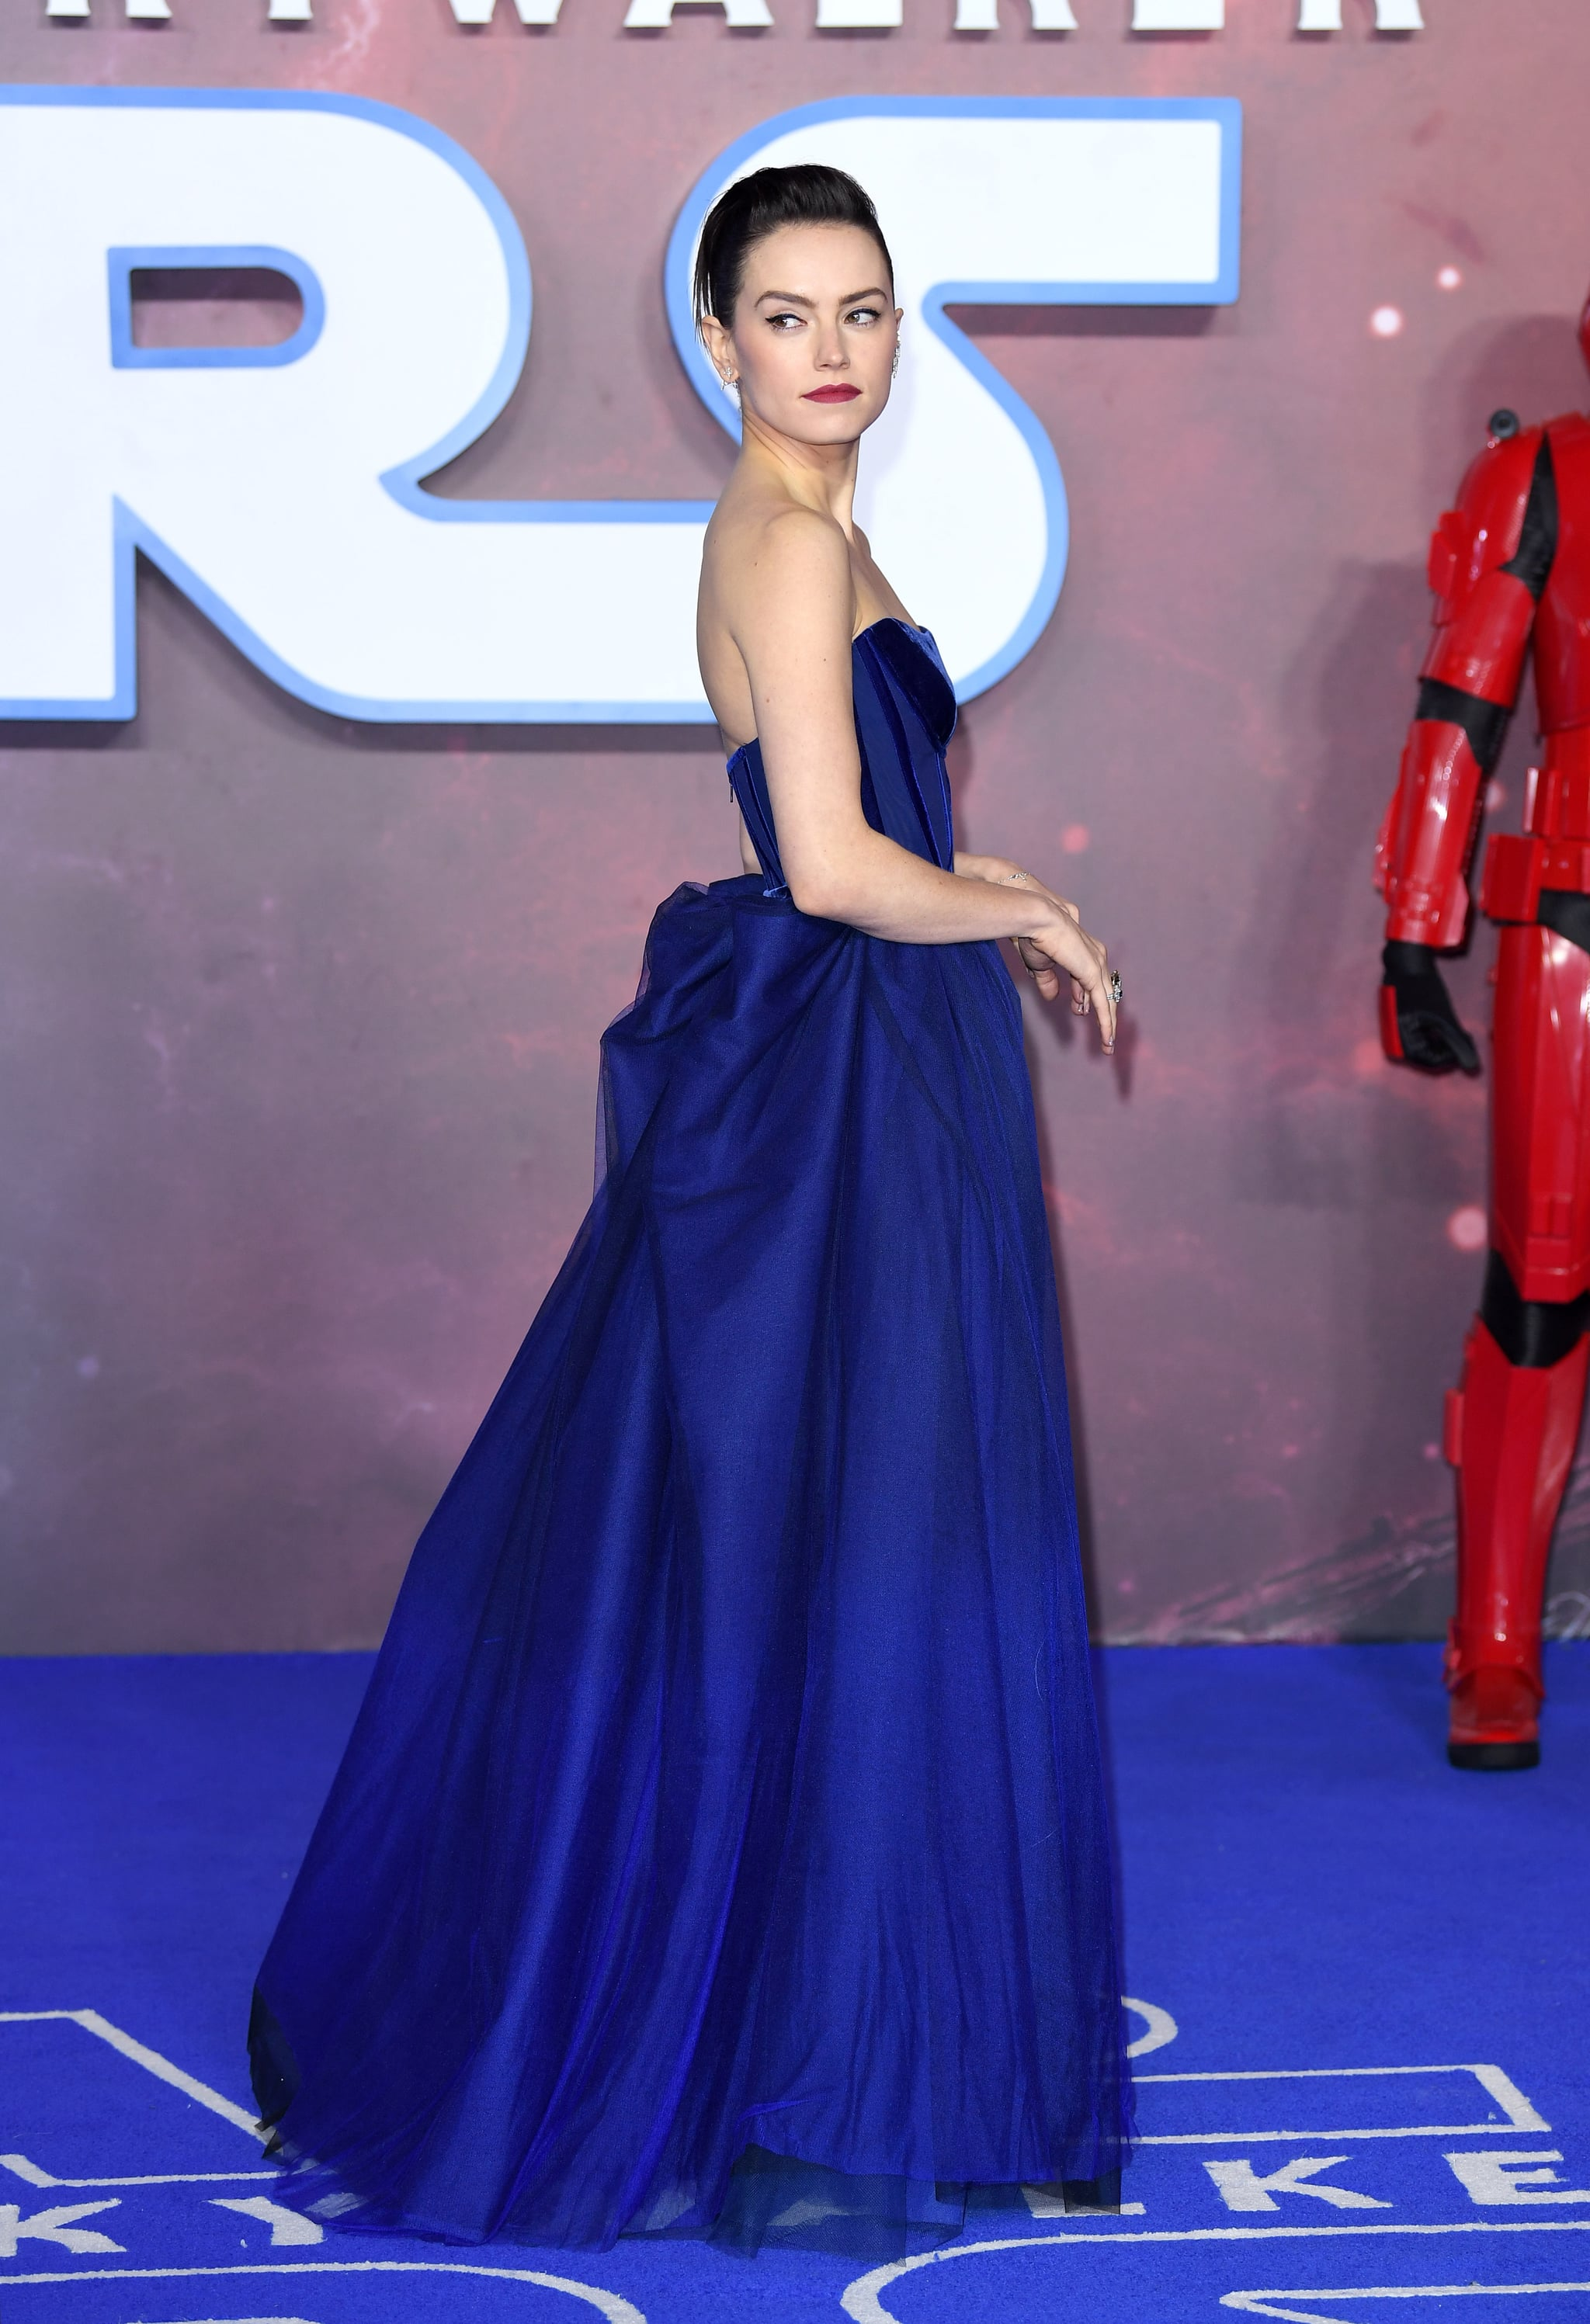 Daisy Ridley At The London Premiere For Star Wars The Rise Of Skywalker See The Cast Of Star Wars The Rise Of Skywalker Turn It Up At The London Premiere You